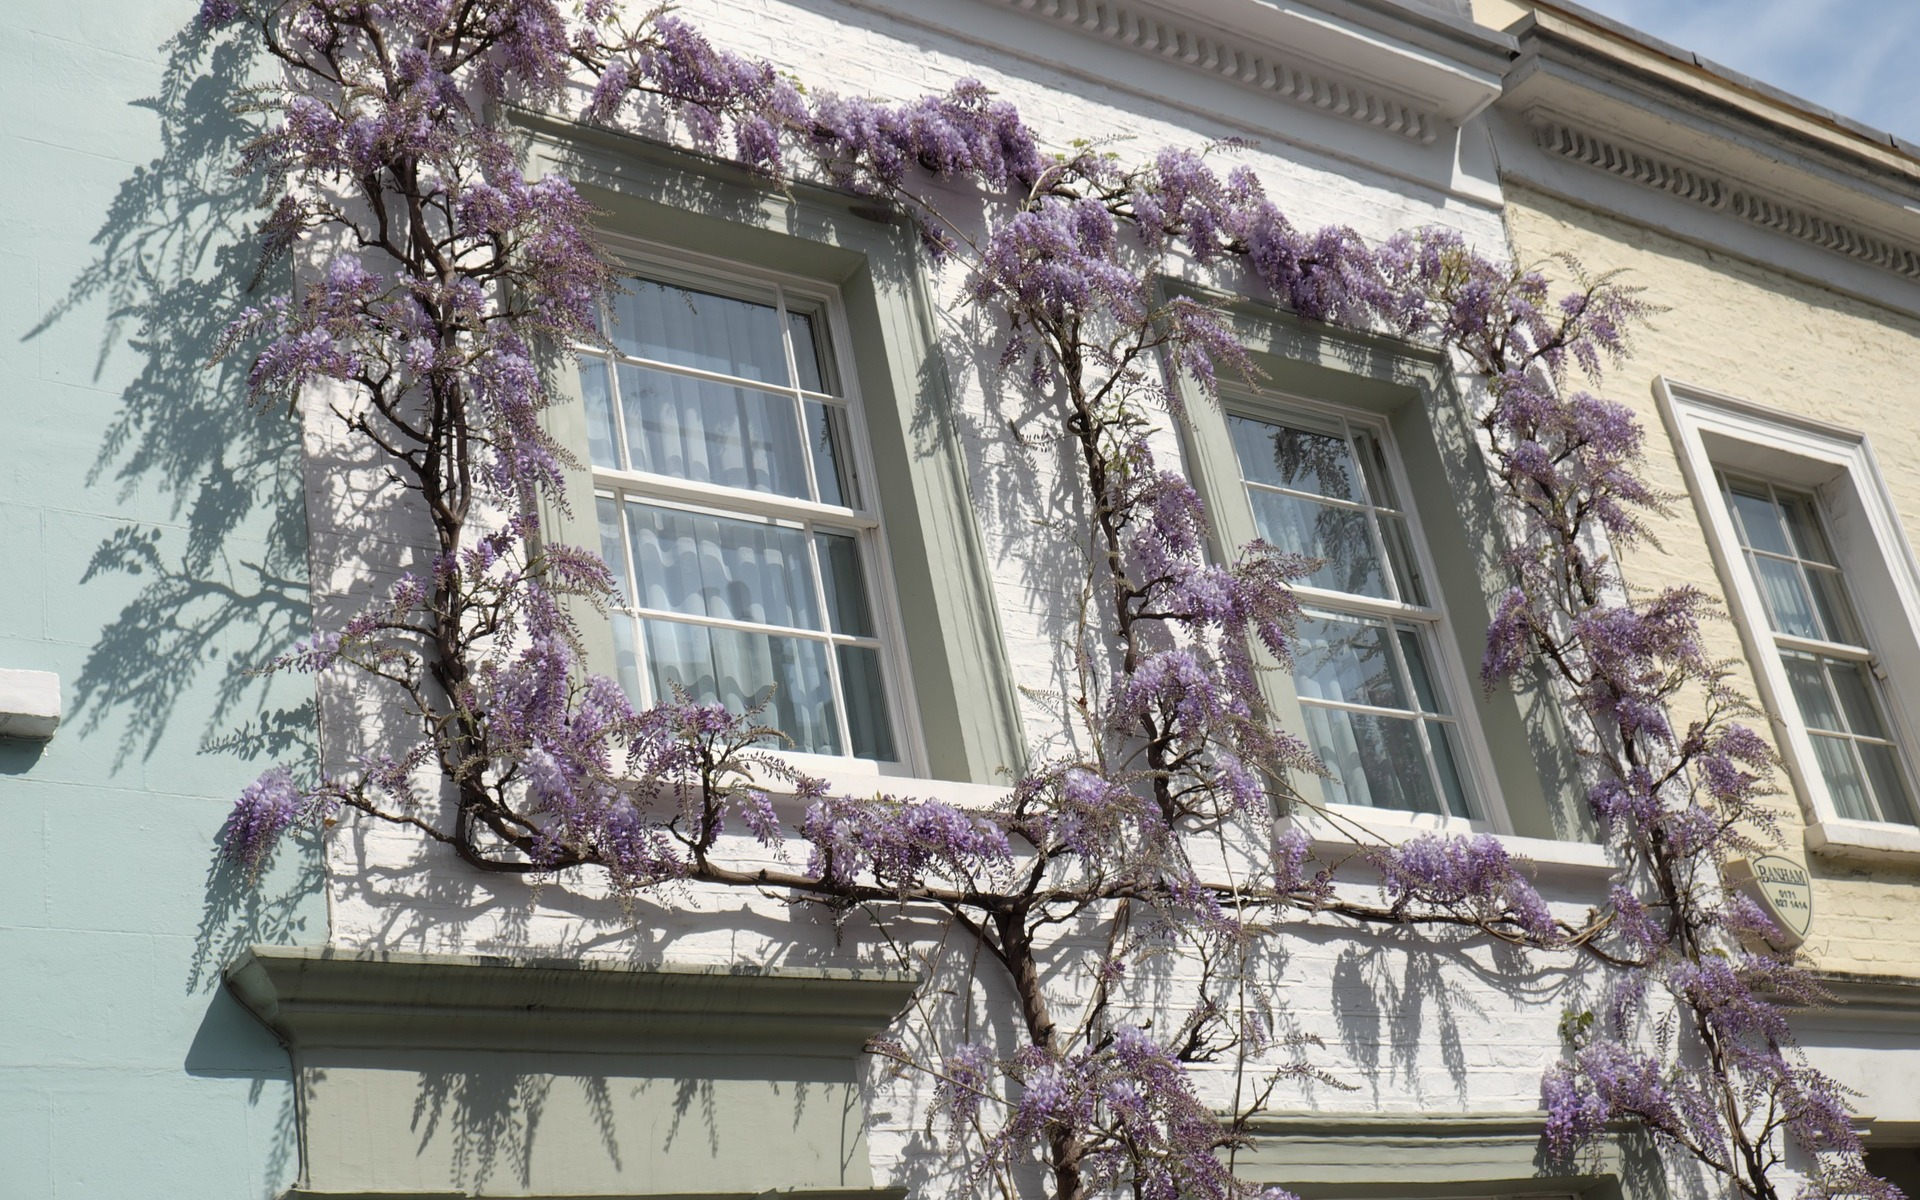 Wisteria blooming around a house window